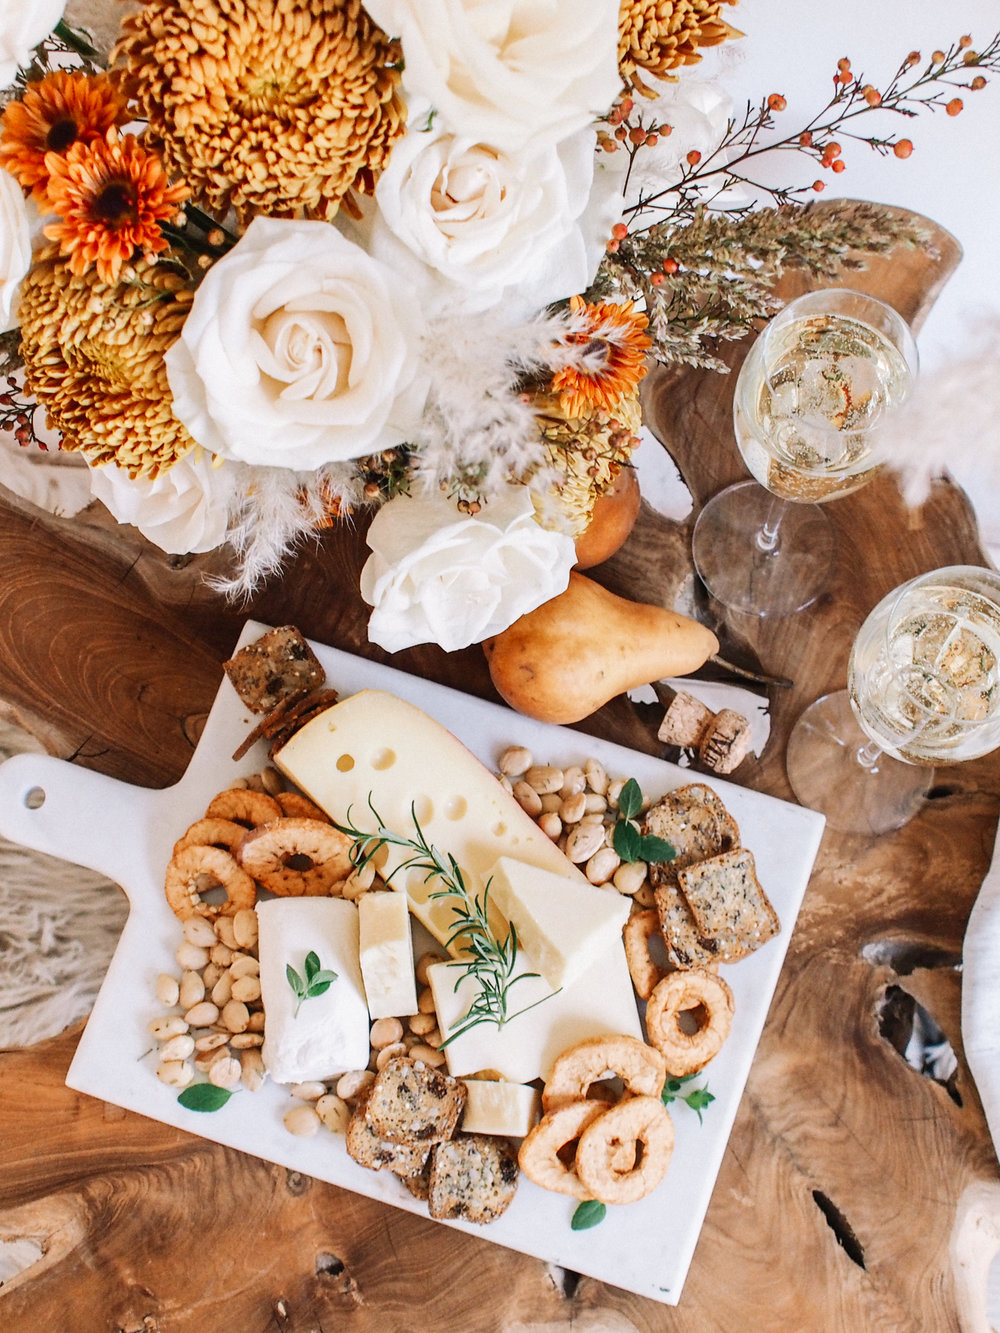 How to make a cheeseboard | A Fabulous Fete